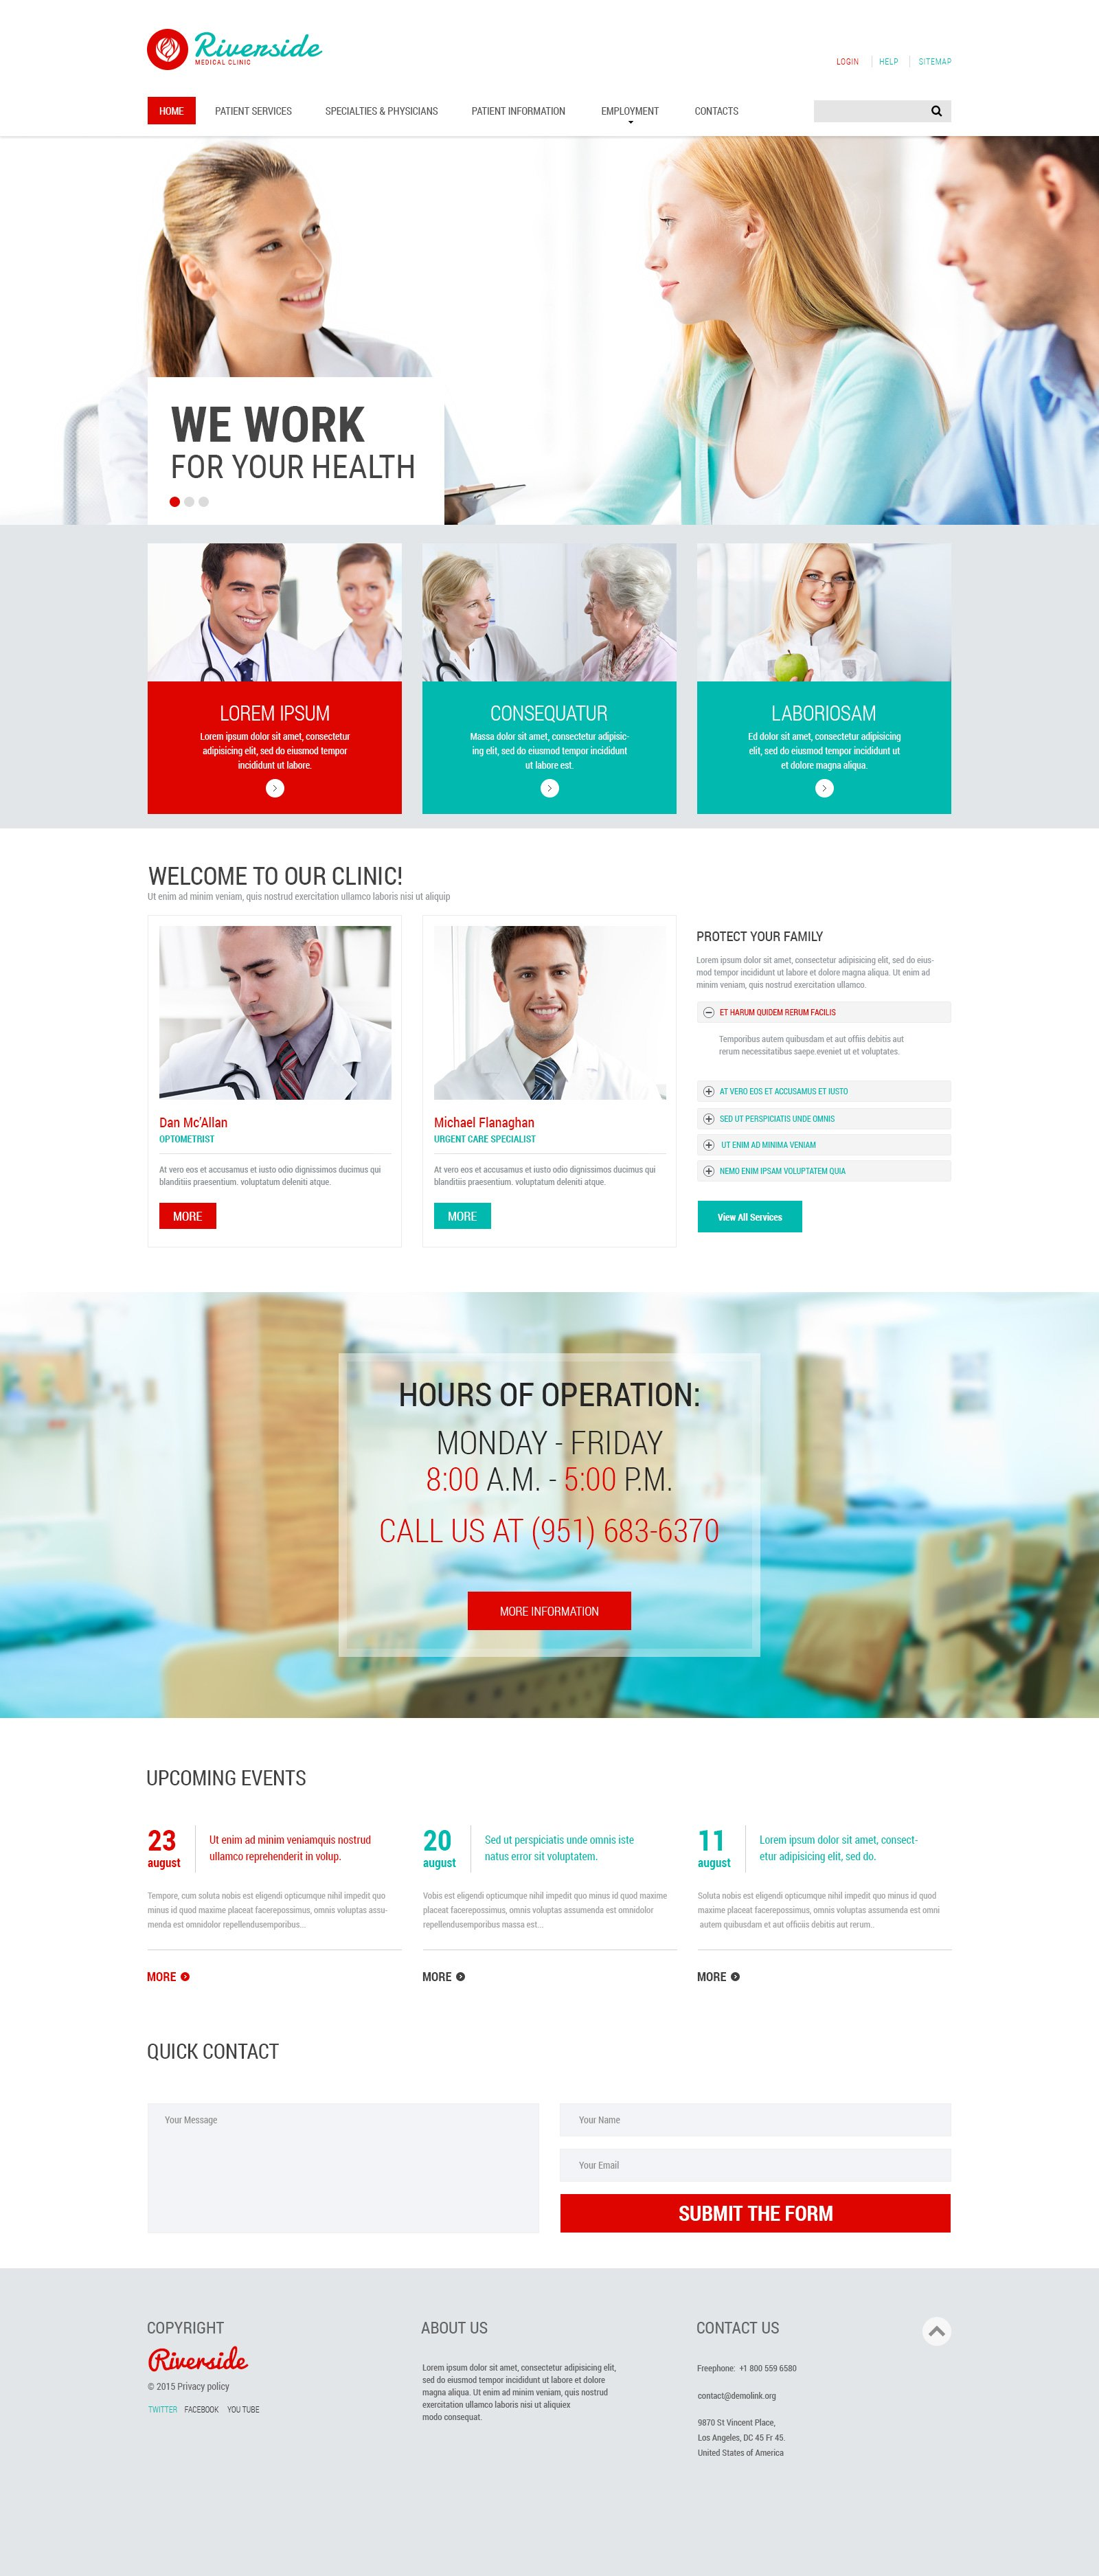 The Rivenside Medical Center Responsive Javascript Animated Design 53541, one of the best website templates of its kind (medical, most popular), also known as rivenside medical center website template, medical clinic website template, doctor website template, services website template, client website template, testimonials website template, body website template, help website template, inspection website template, equipment website template, patients website template, medicine website template, healthcare website template, surgery website template, science website template, laboratory website template, drugs website template, pills website template, nurse website template, cure website template, vaccine website template, treatment website template, oncology website template, prescription website template, pharmaceutical website template, disease website template, illness website template, vitam and related with rivenside medical center, medical clinic, doctor, services, client, testimonials, body, help, inspection, equipment, patients, medicine, healthcare, surgery, science, laboratory, drugs, pills, nurse, cure, vaccine, treatment, oncology, prescription, pharmaceutical, disease, illness, vitam, etc.